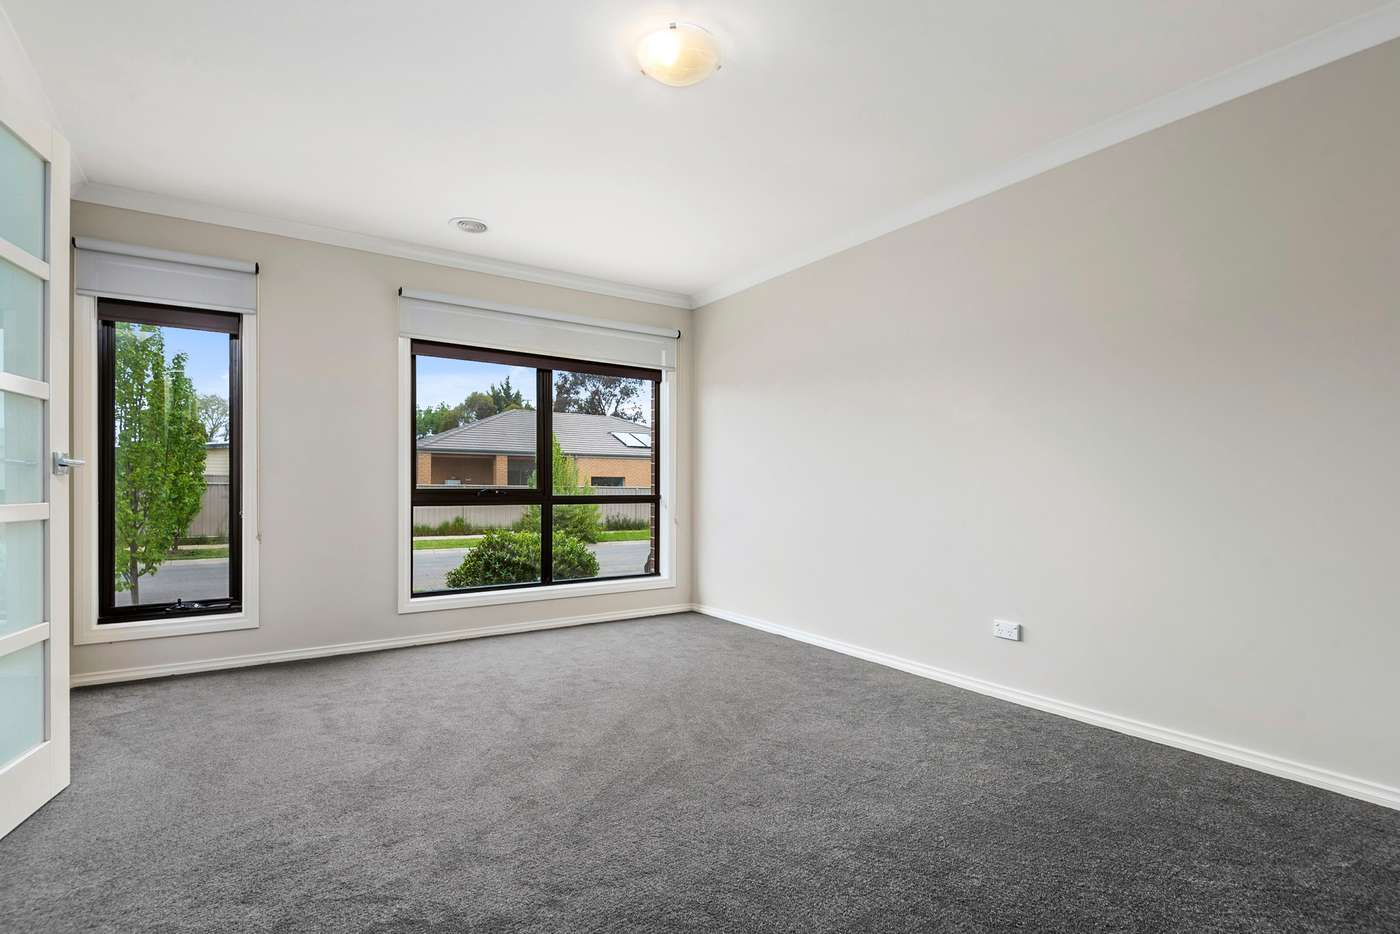 Sixth view of Homely house listing, 3 Fitch Court, Ballan VIC 3342